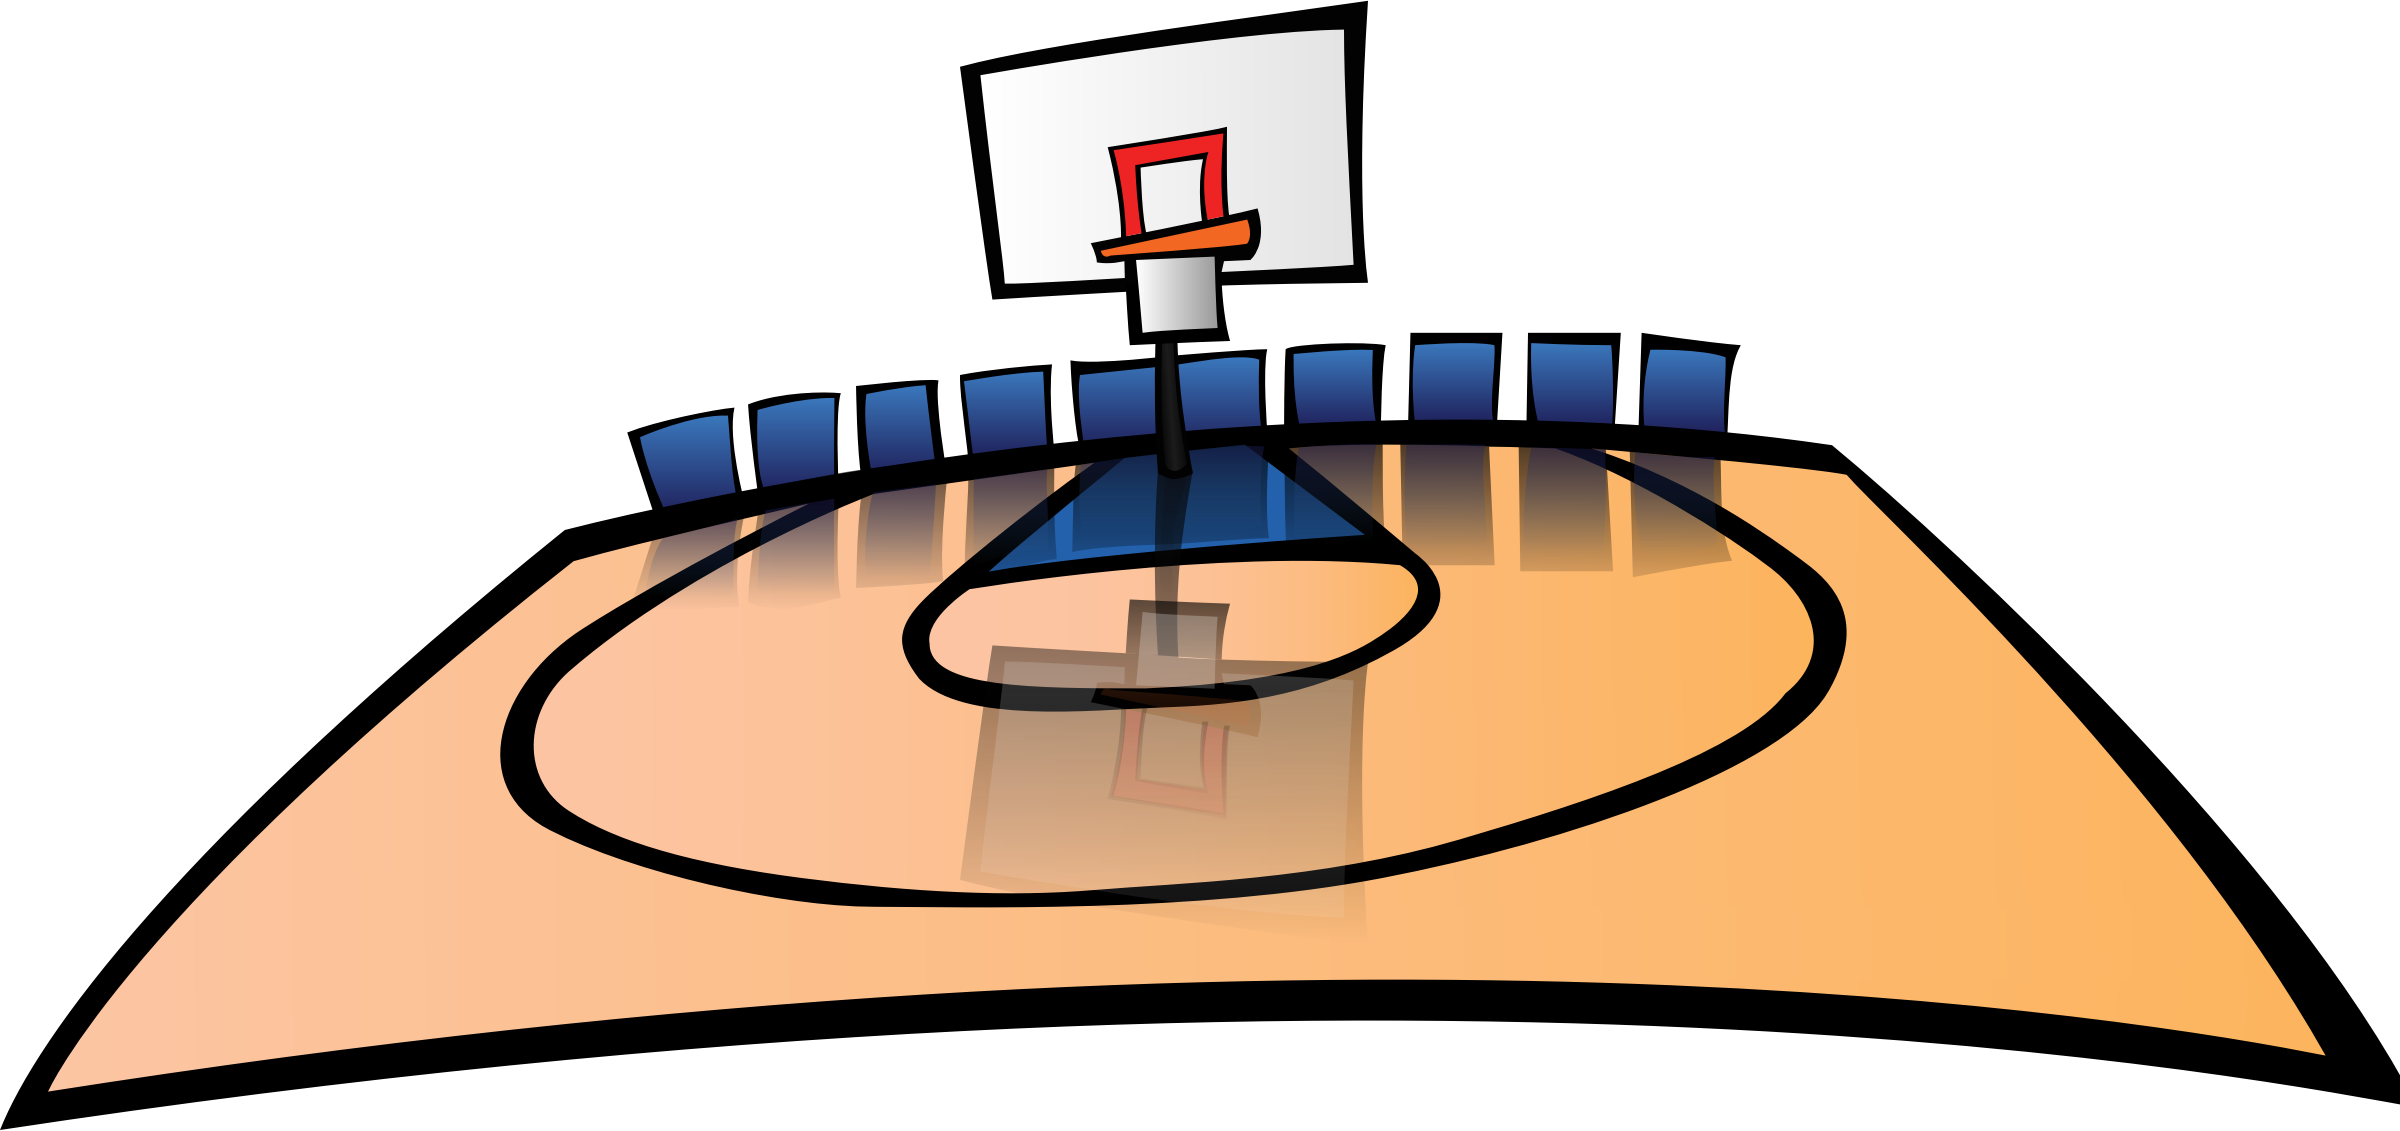 School gym clipart clip royalty free stock Clipart - Basketball Court clip royalty free stock